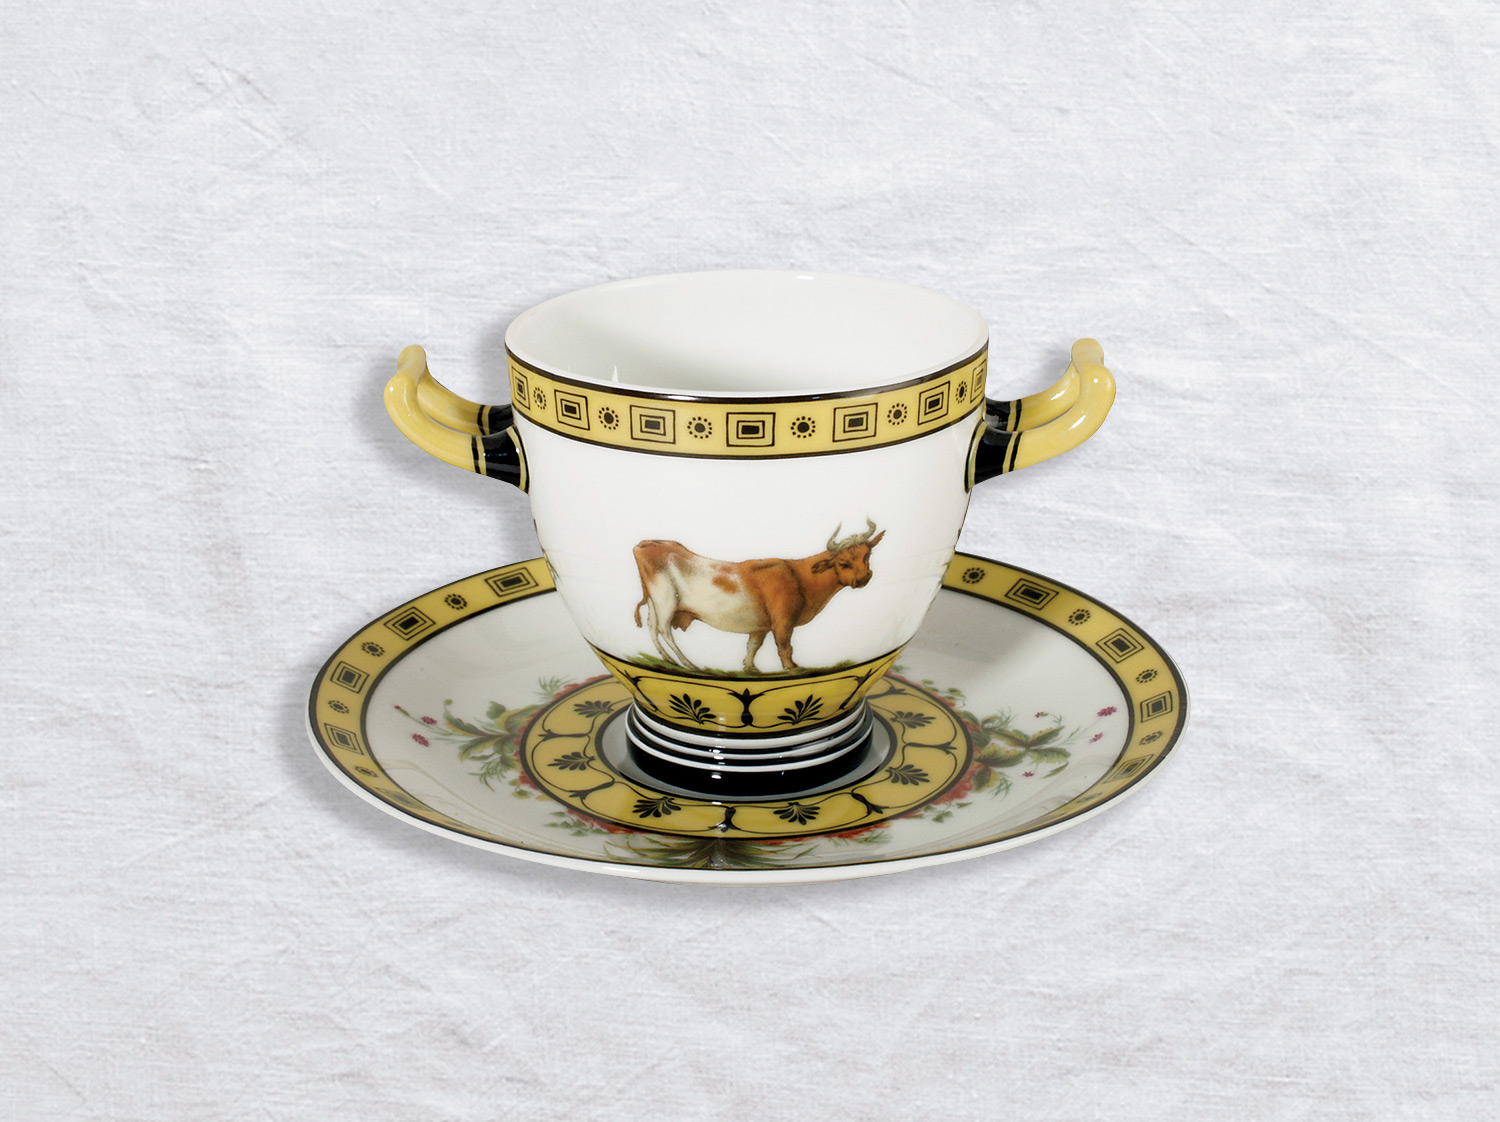 China Etruscan cup with handles and saucer of the collection La laiterie de rambouillet | Bernardaud